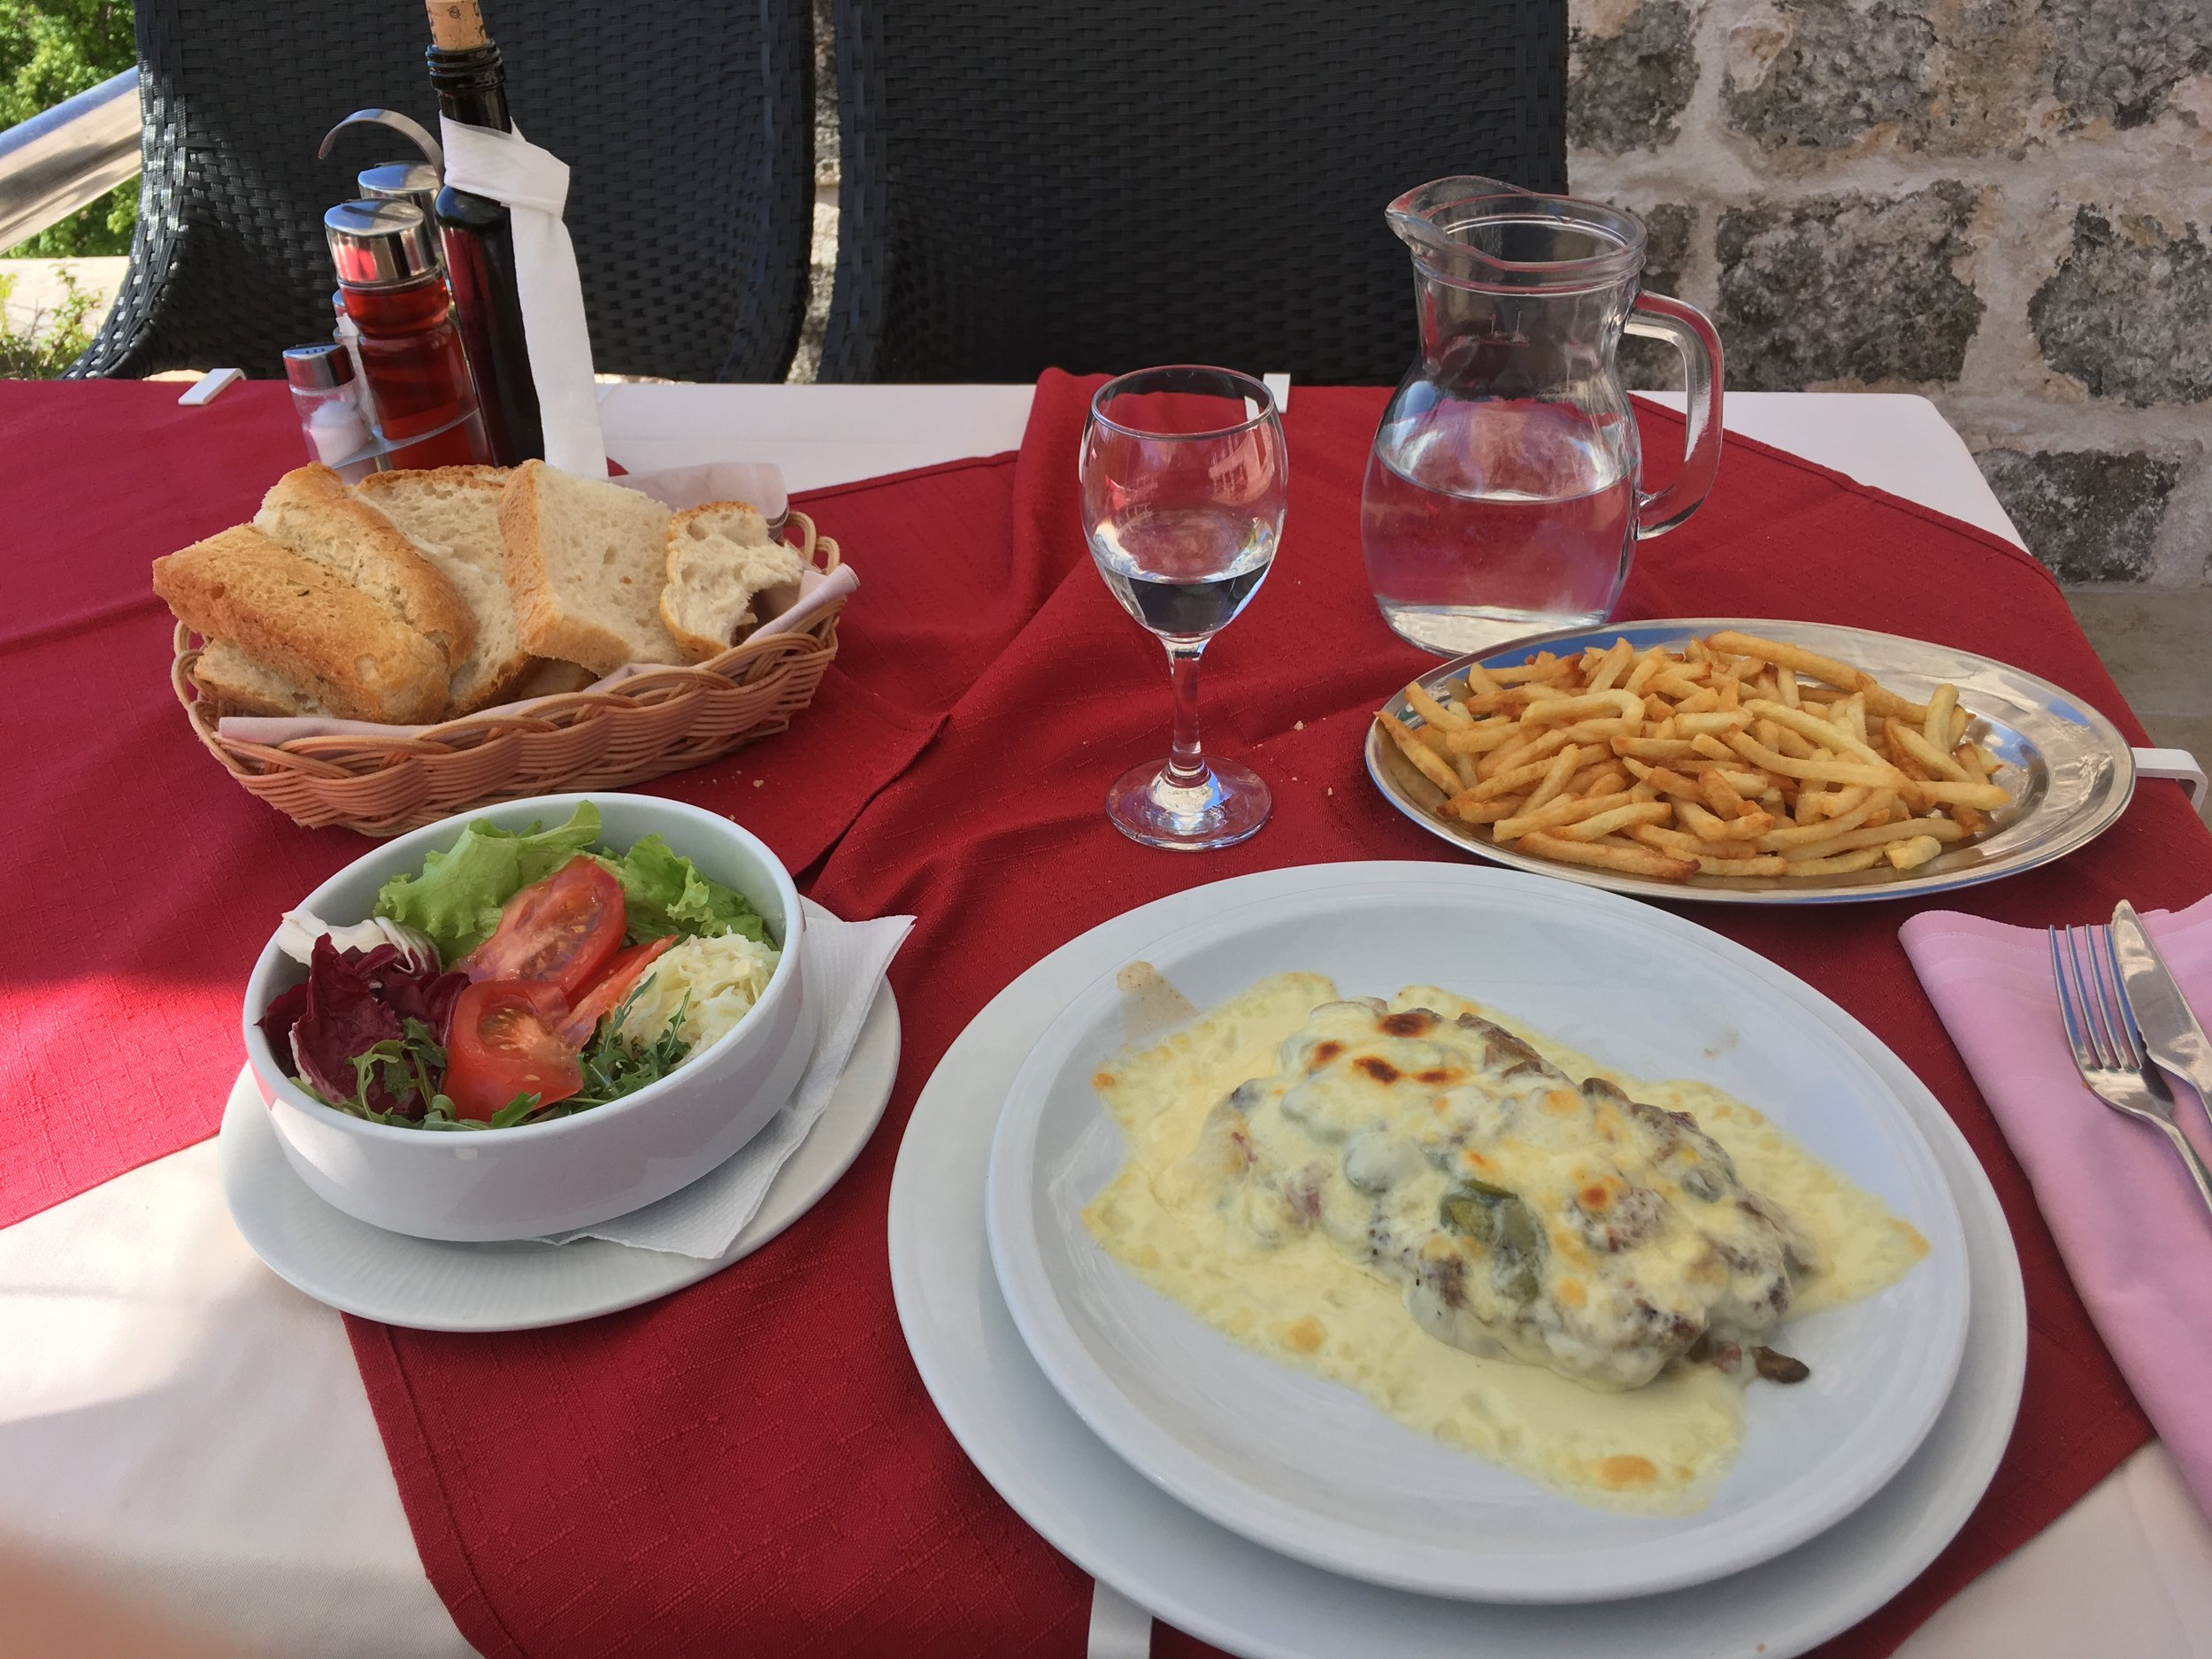 A generous portion of minced lamb covered in cheese obtained on the island of Brač.